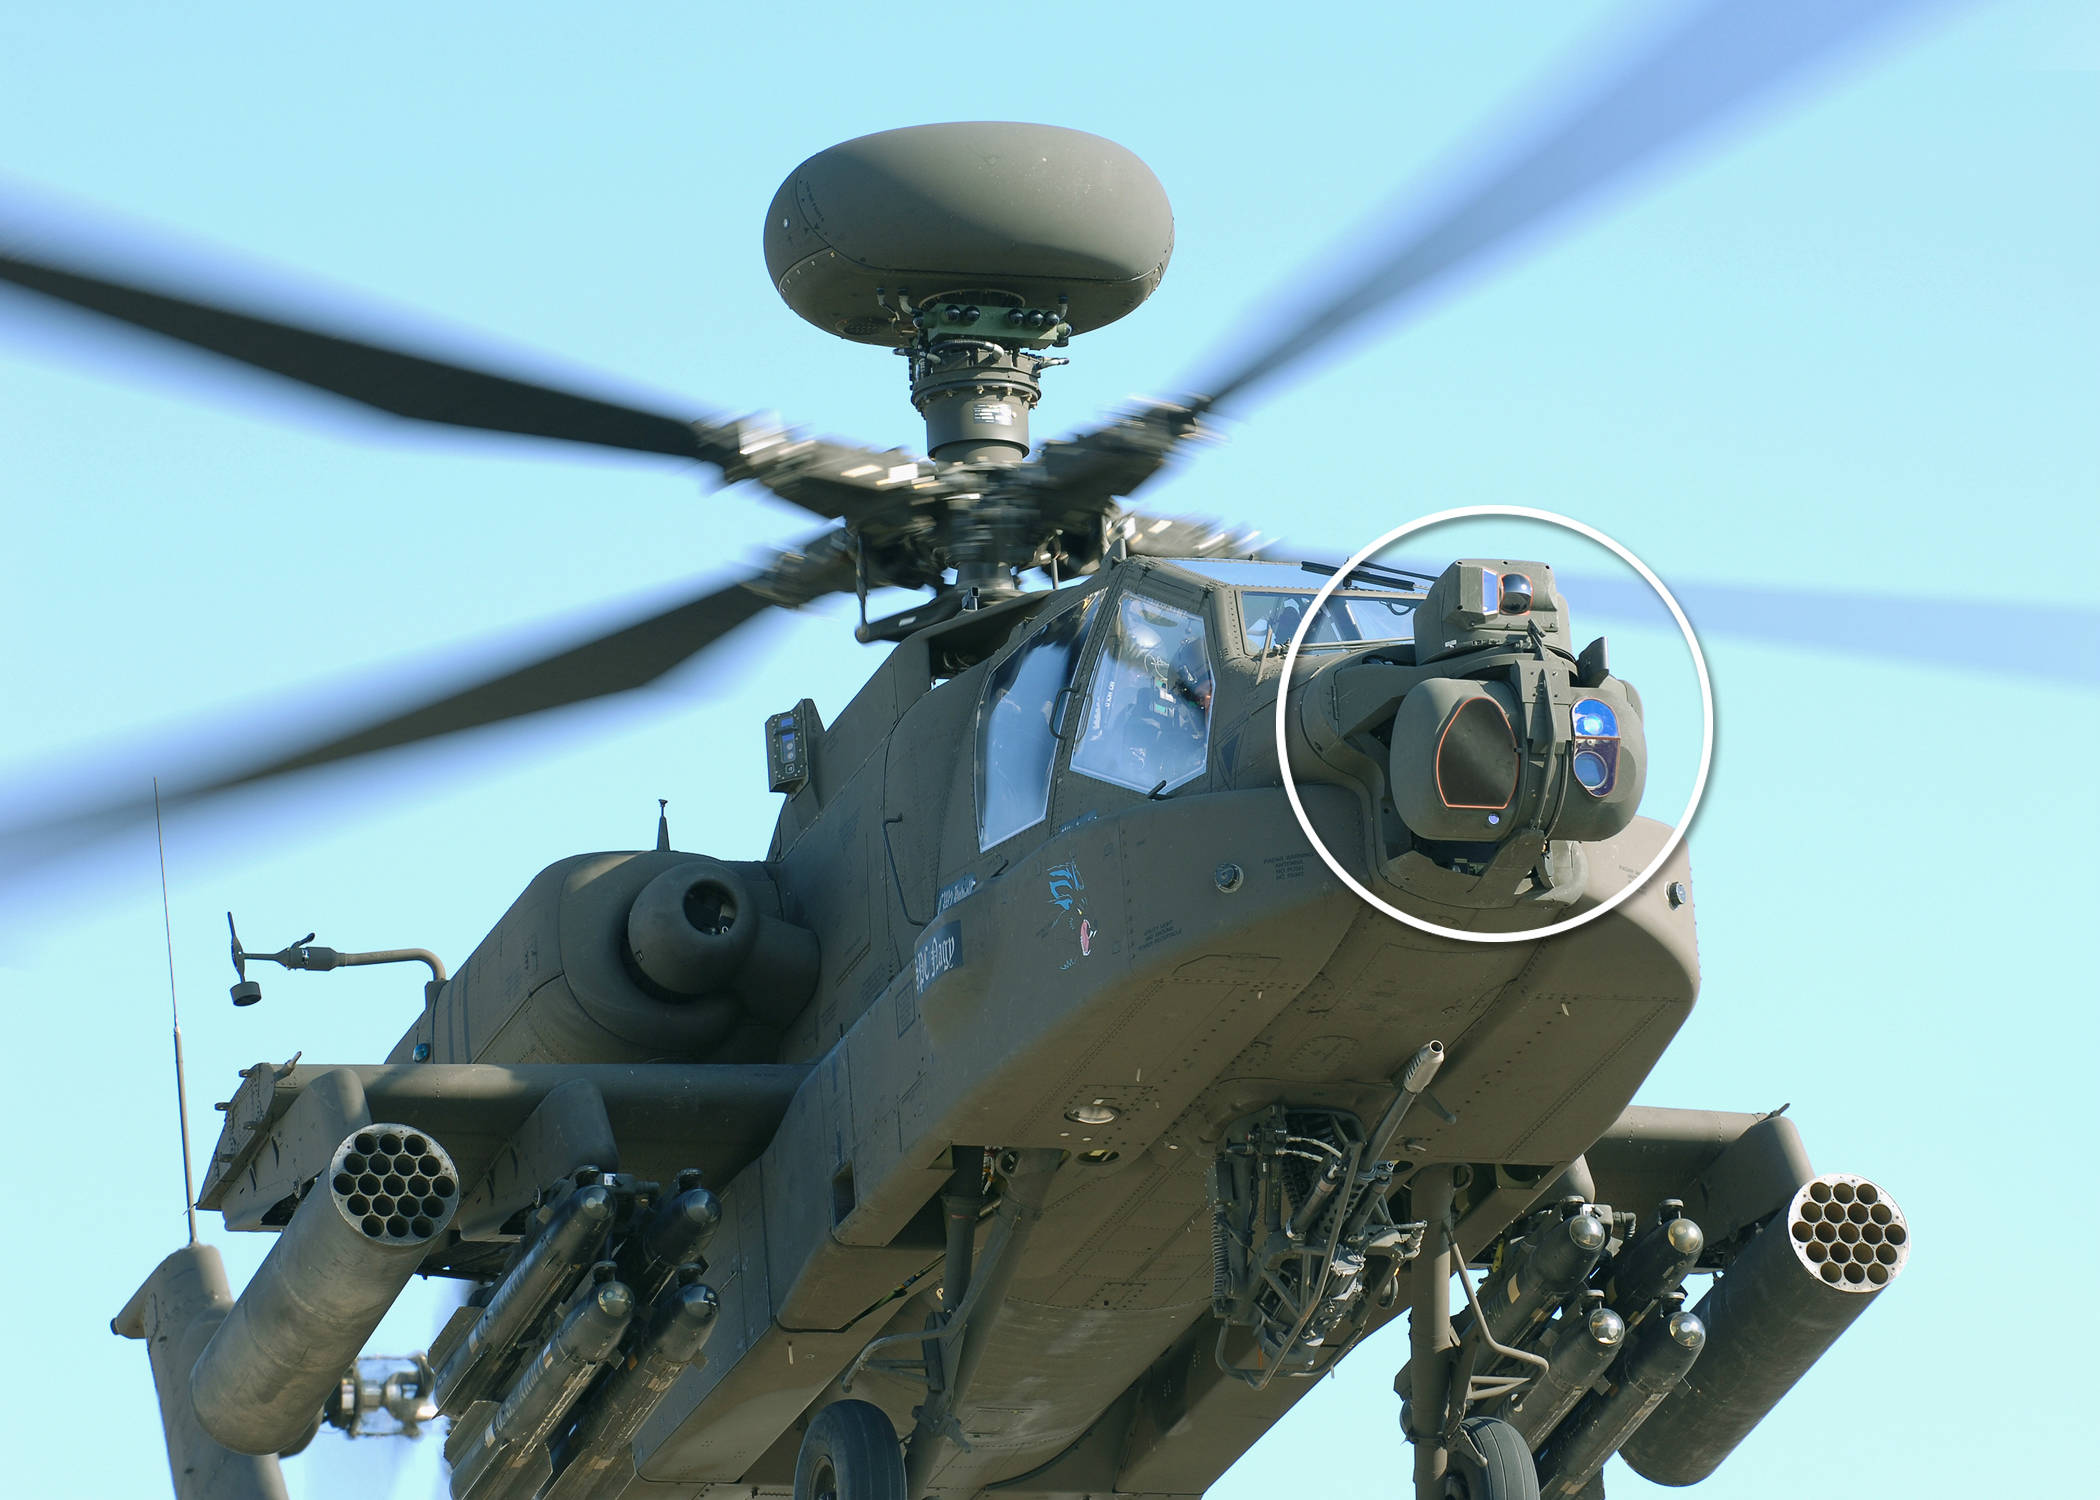 Ударный вертолет АН-64 Apache с прицельной системой M-TADS/PNVS (Modernized Target Acquisition Designation Sight/Pilot Night Vision Sensor).